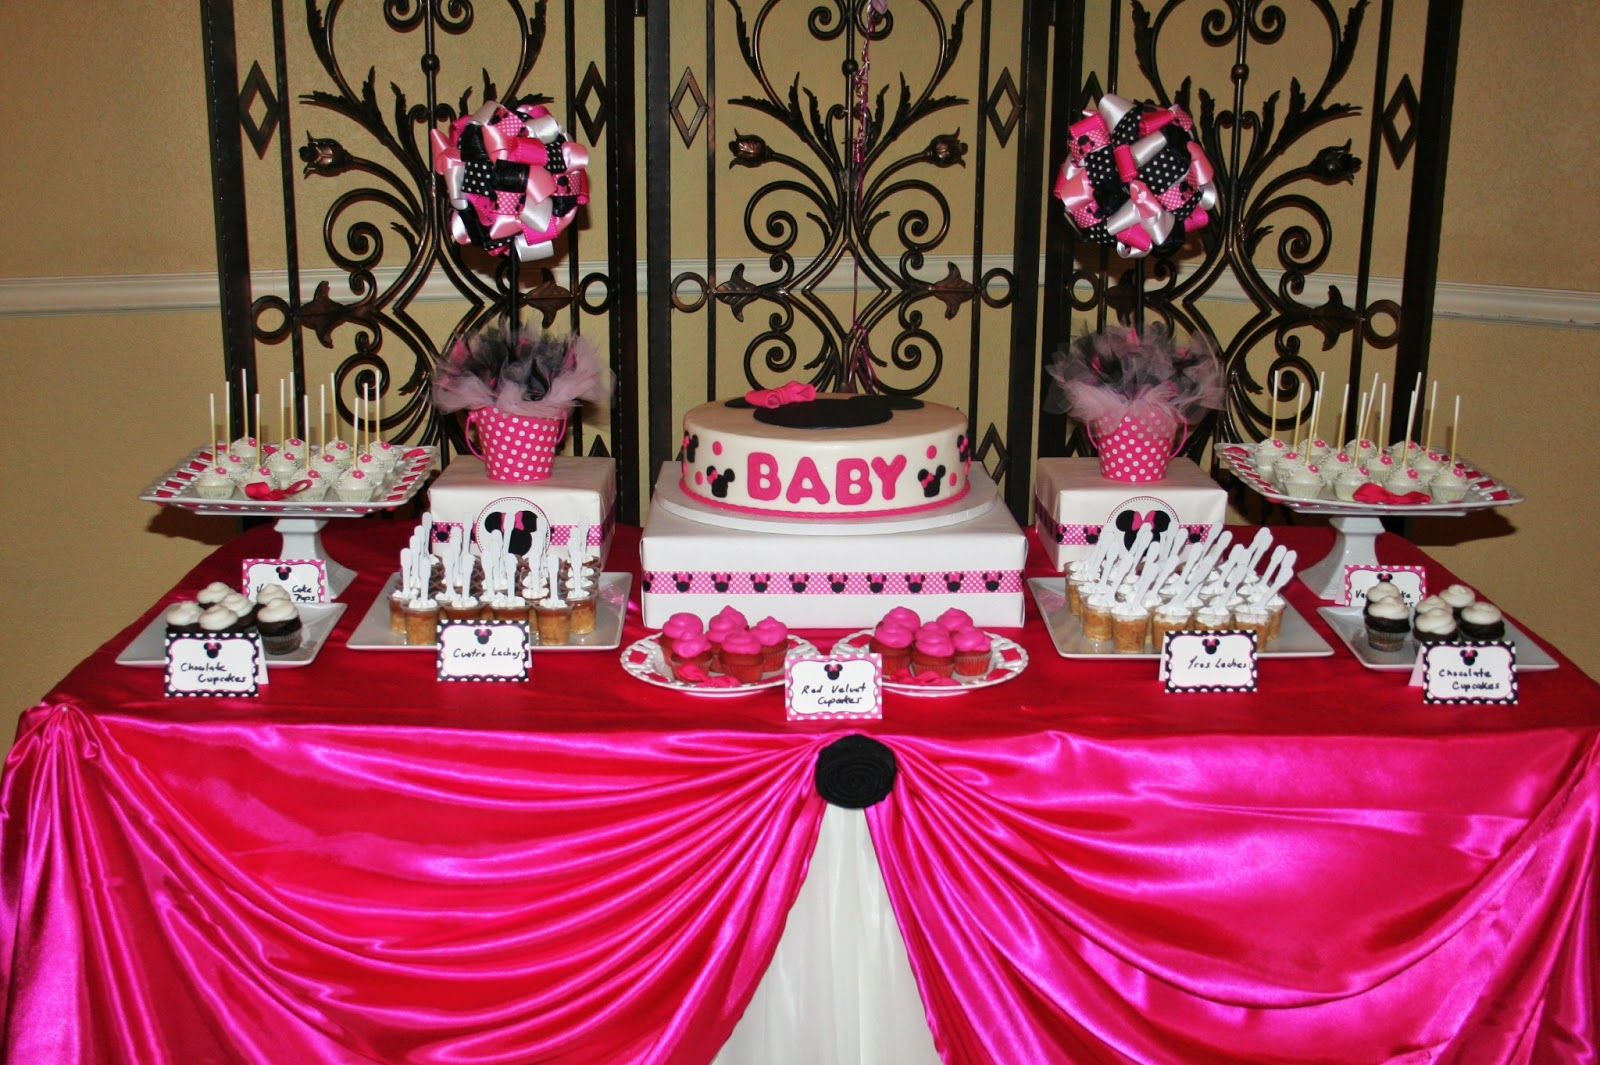 Baby shower minnie mouse dale detalles for Baby minnie decoration ideas